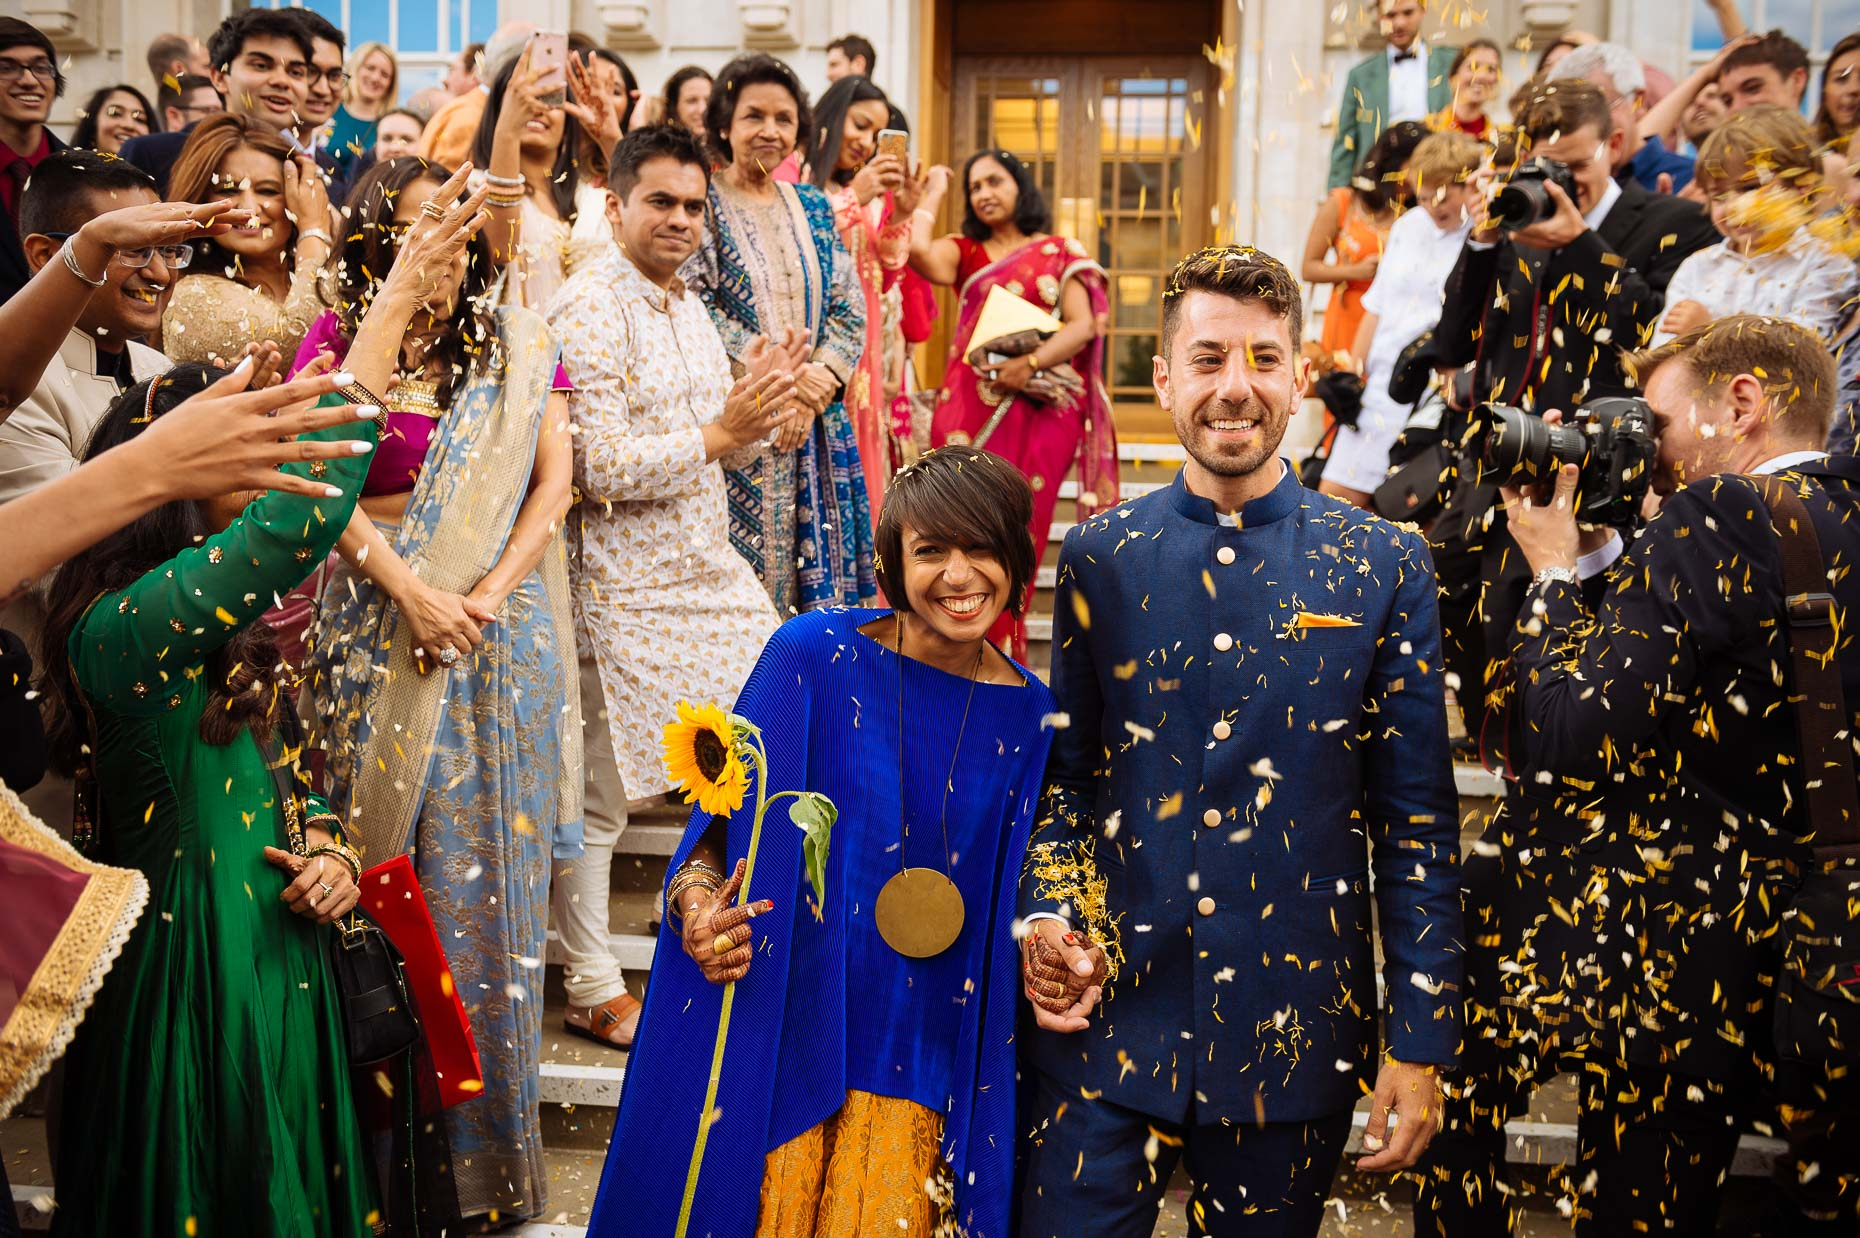 pooja-dan-hackney-town-hall-confetti-steps-london-asian-wedding-photography-10